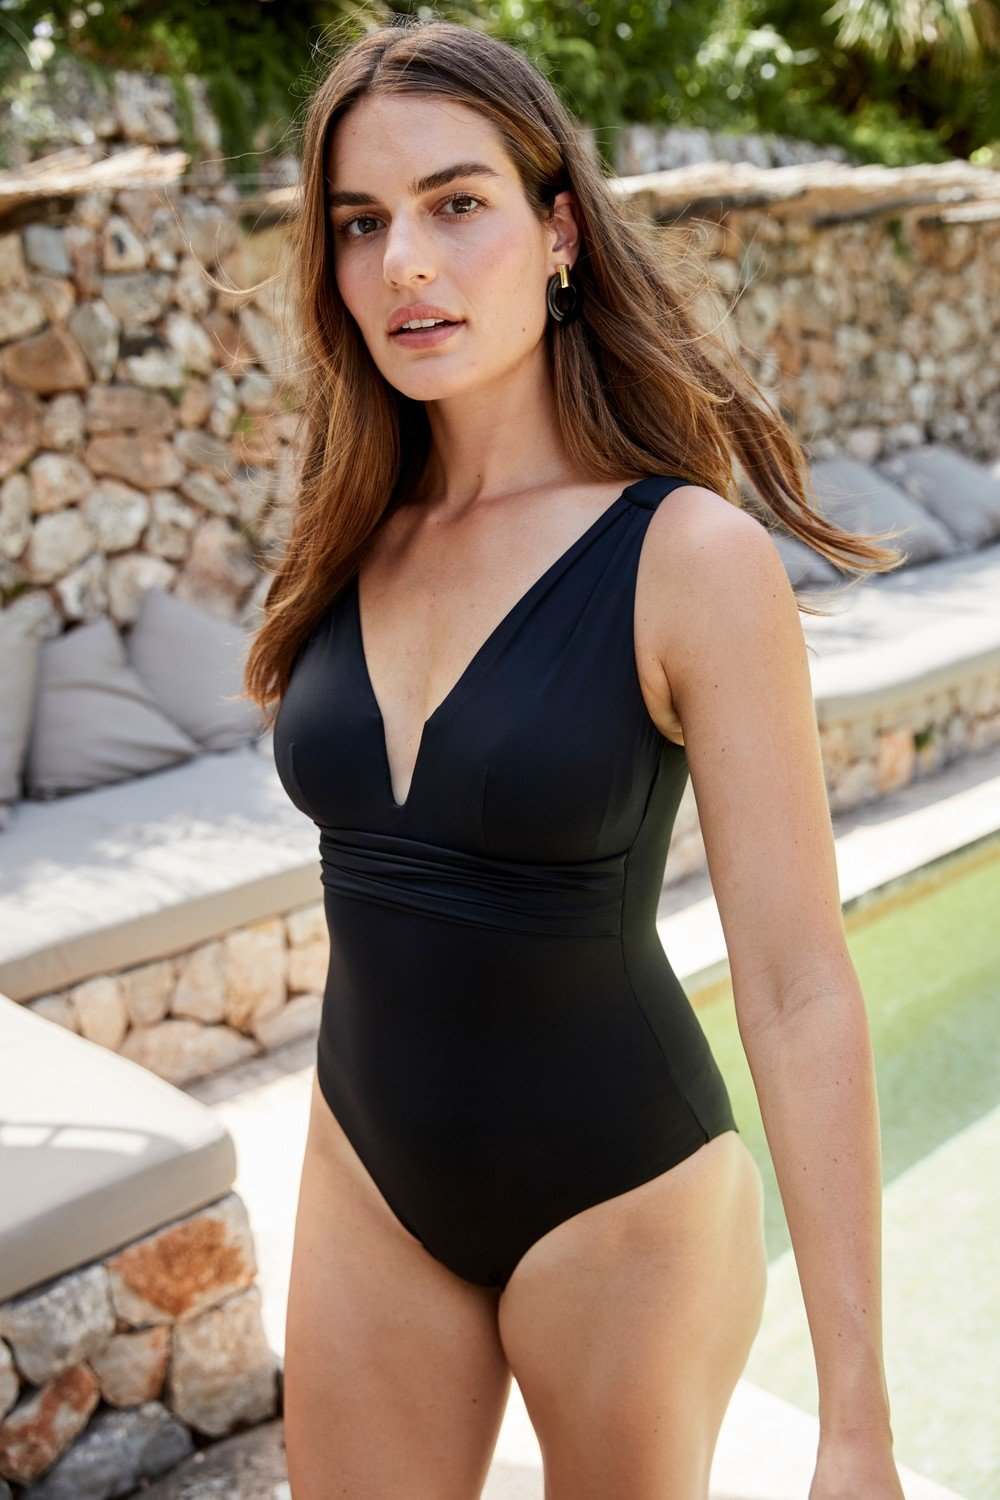 e4349981beb4e Next V Wire Shape Enhancing Swimsuit Online